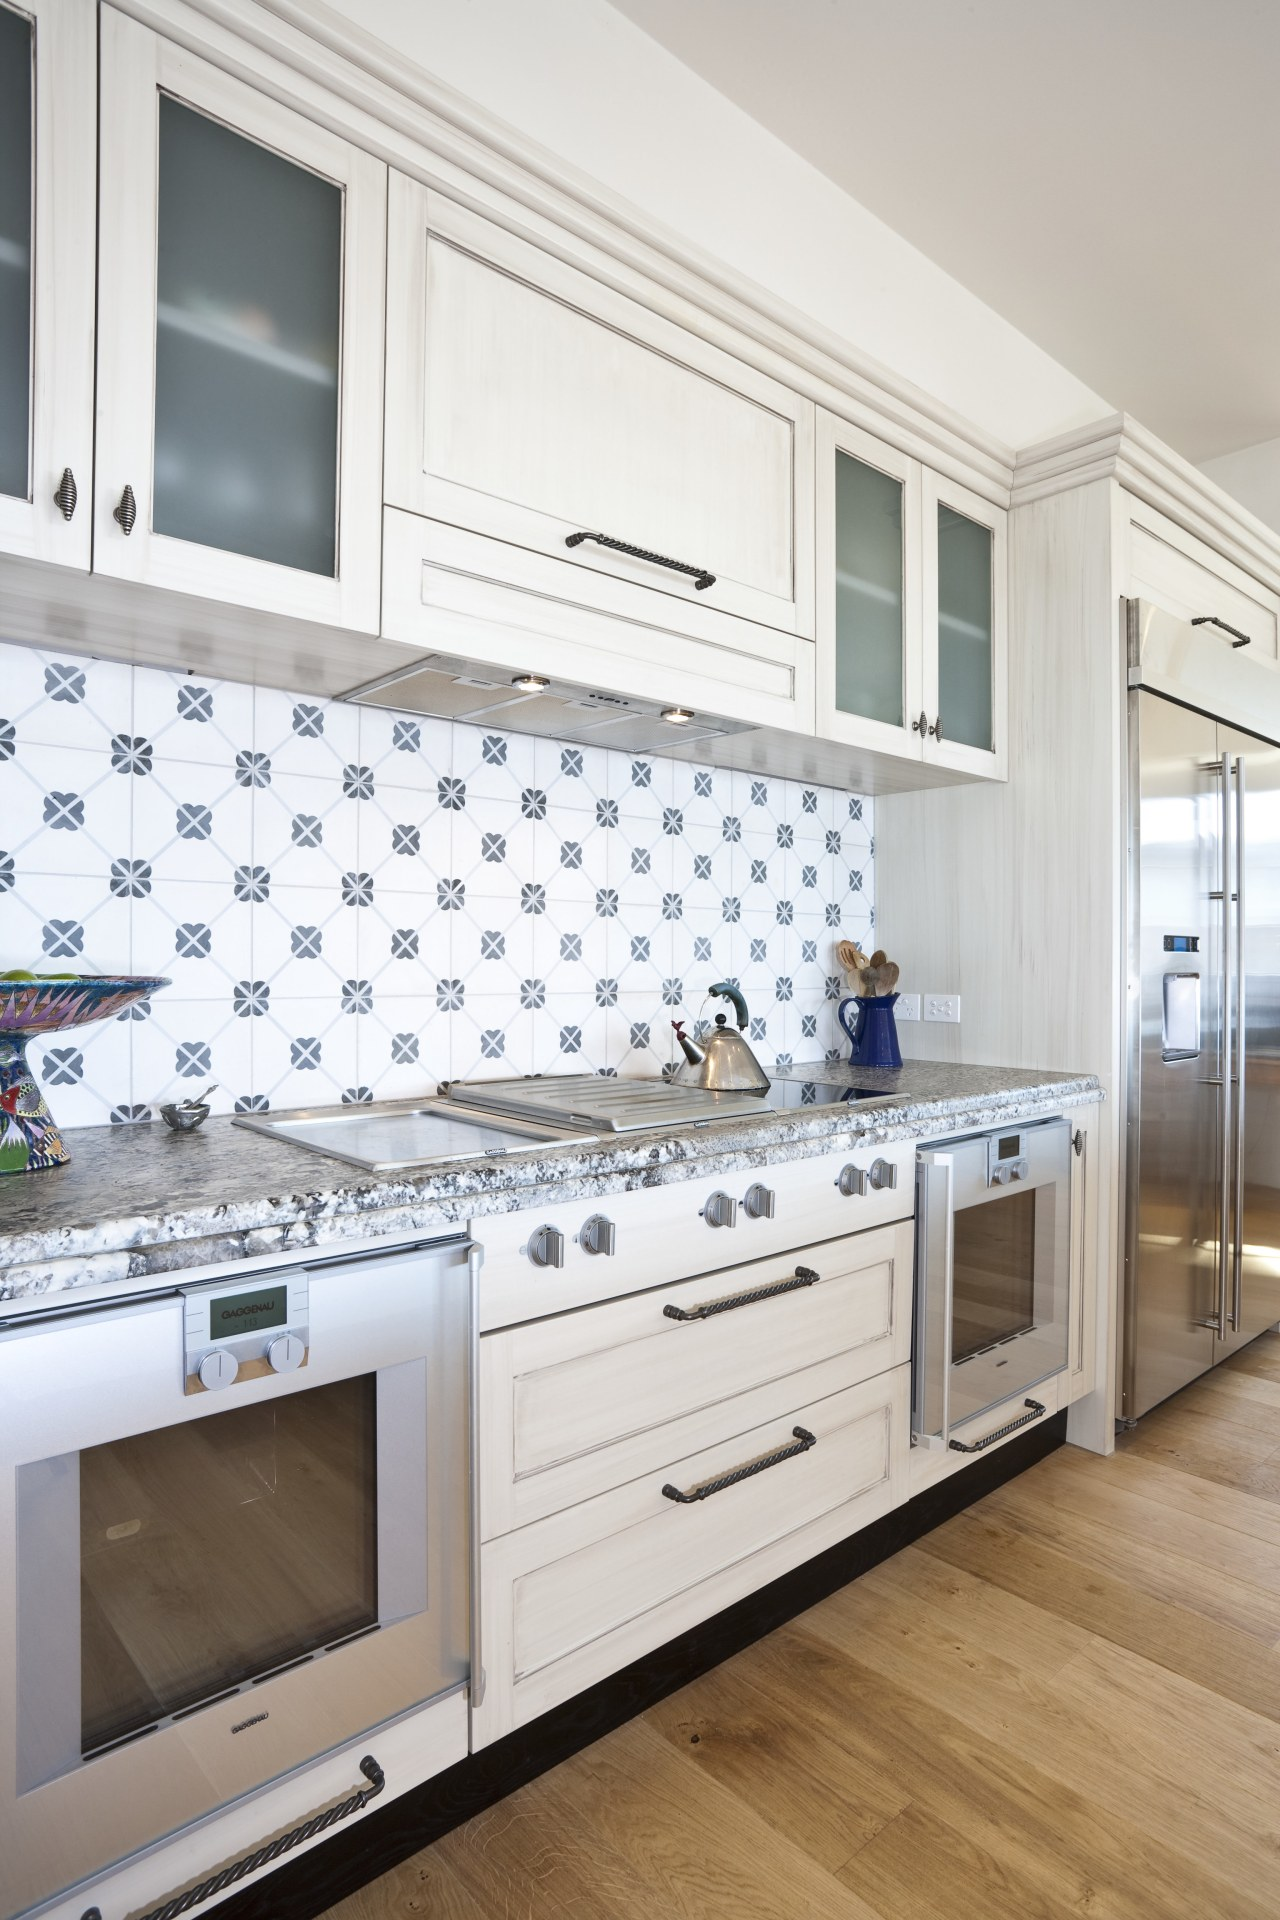 View of oven cooking area cabinetry, countertop, cuisine classique, floor, flooring, home, home appliance, interior design, kitchen, room, wall, window, white